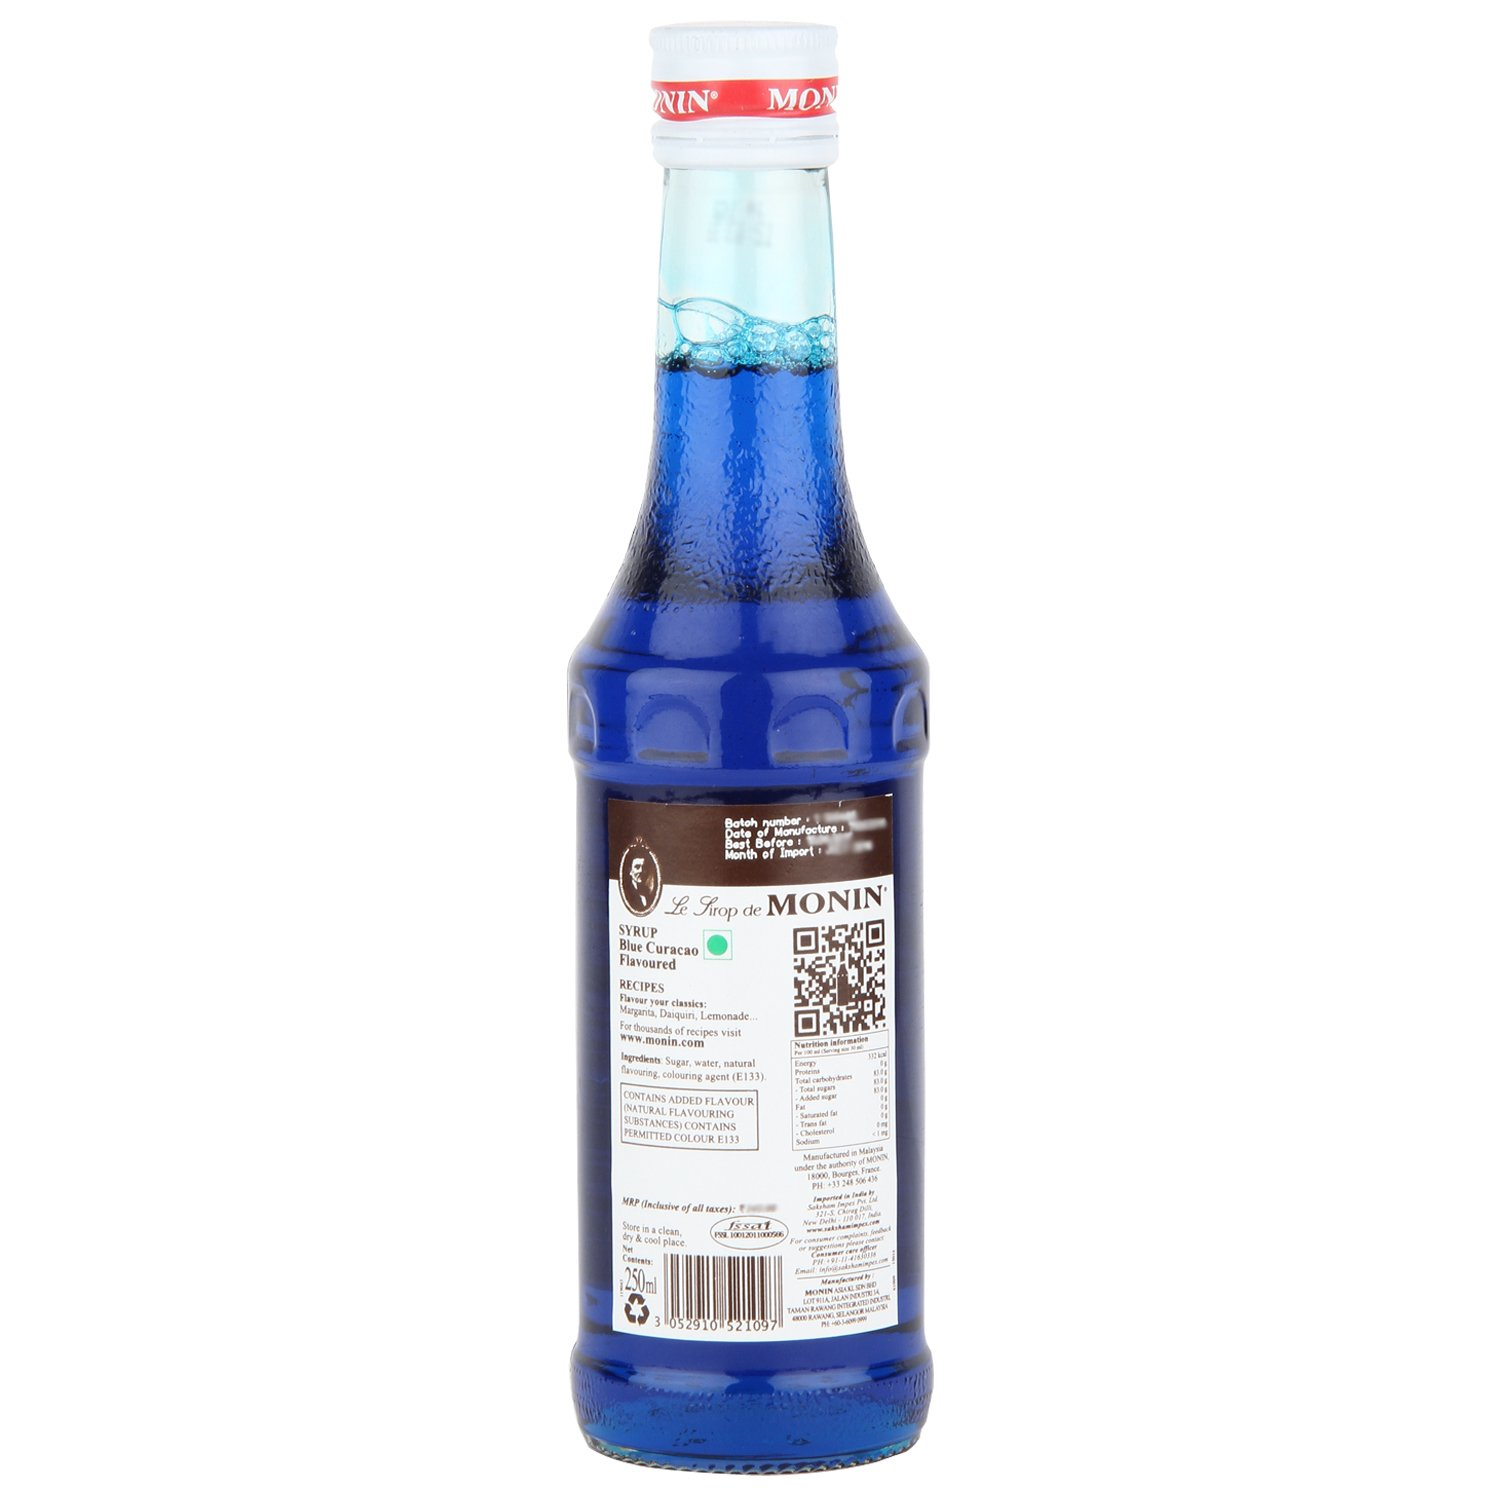 Monin Blue Curacao Syrup, 250ml: Amazon.in: Grocery & Gourmet Foods